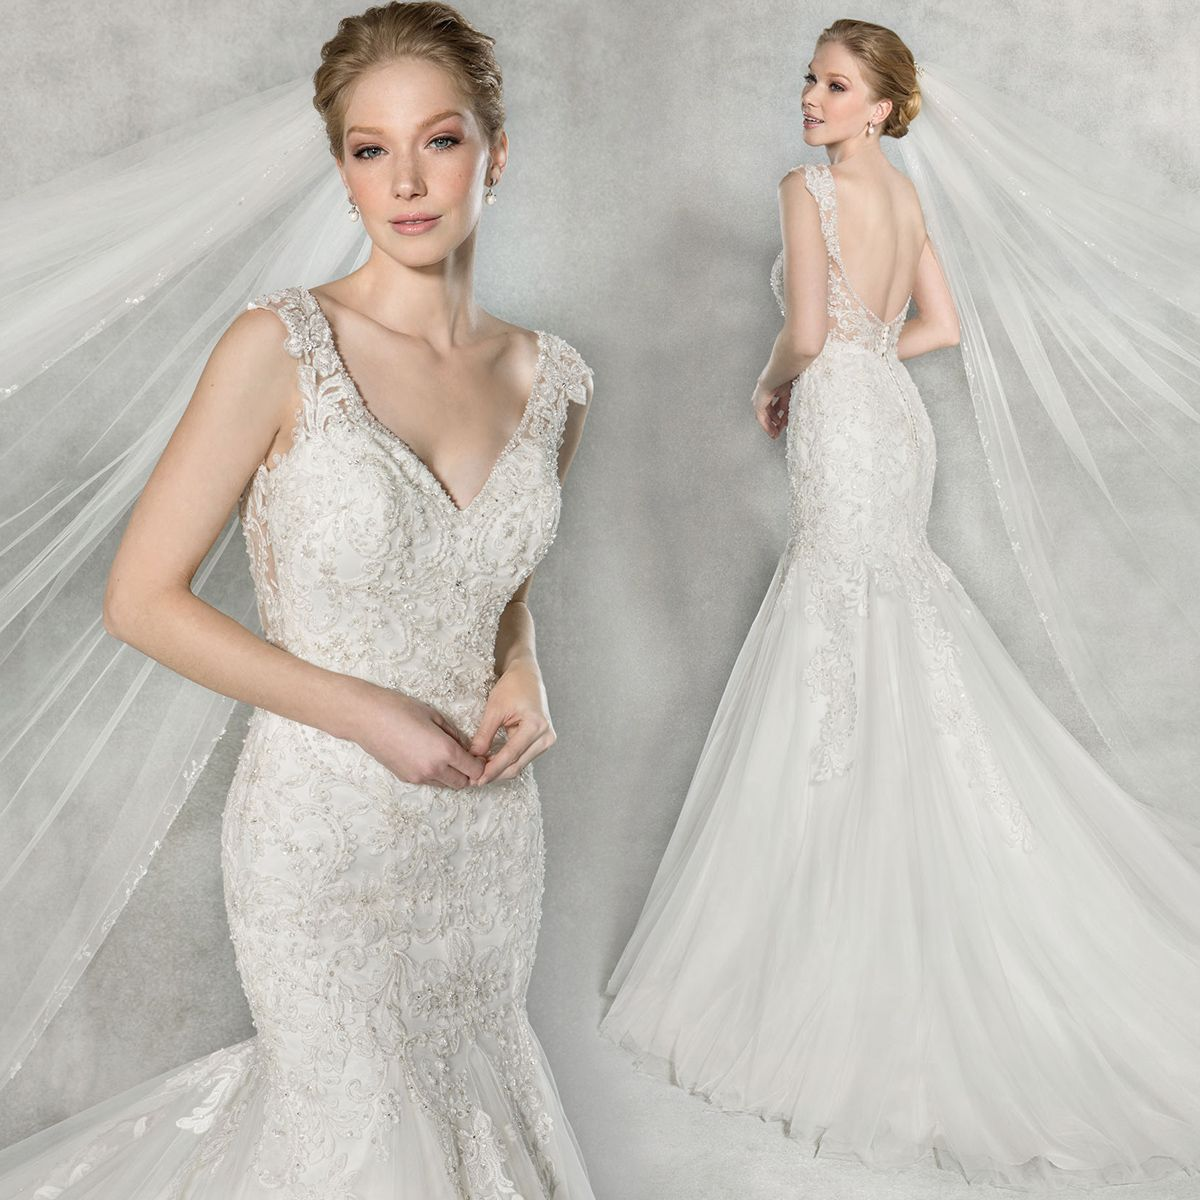 WED2B On Twitter The New Gown Bexley By Anna Sorrano Look And Feel A Million Dollars In This Dazzling Fishtail Wedding Dress